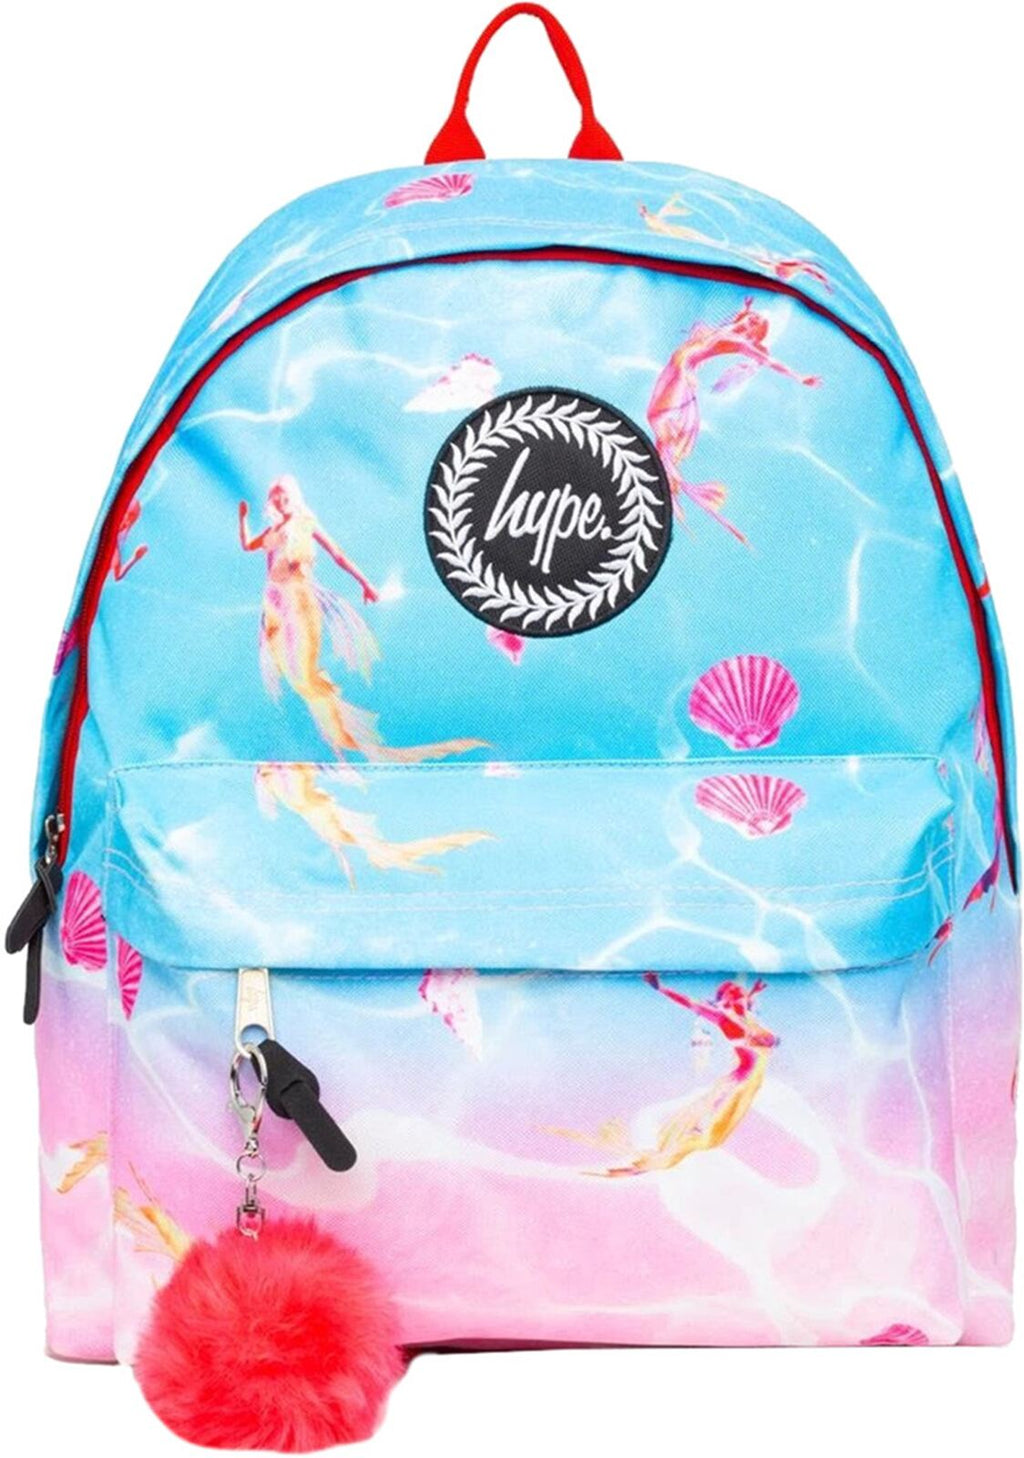 Hype Mermaid Backpack Bag Pink